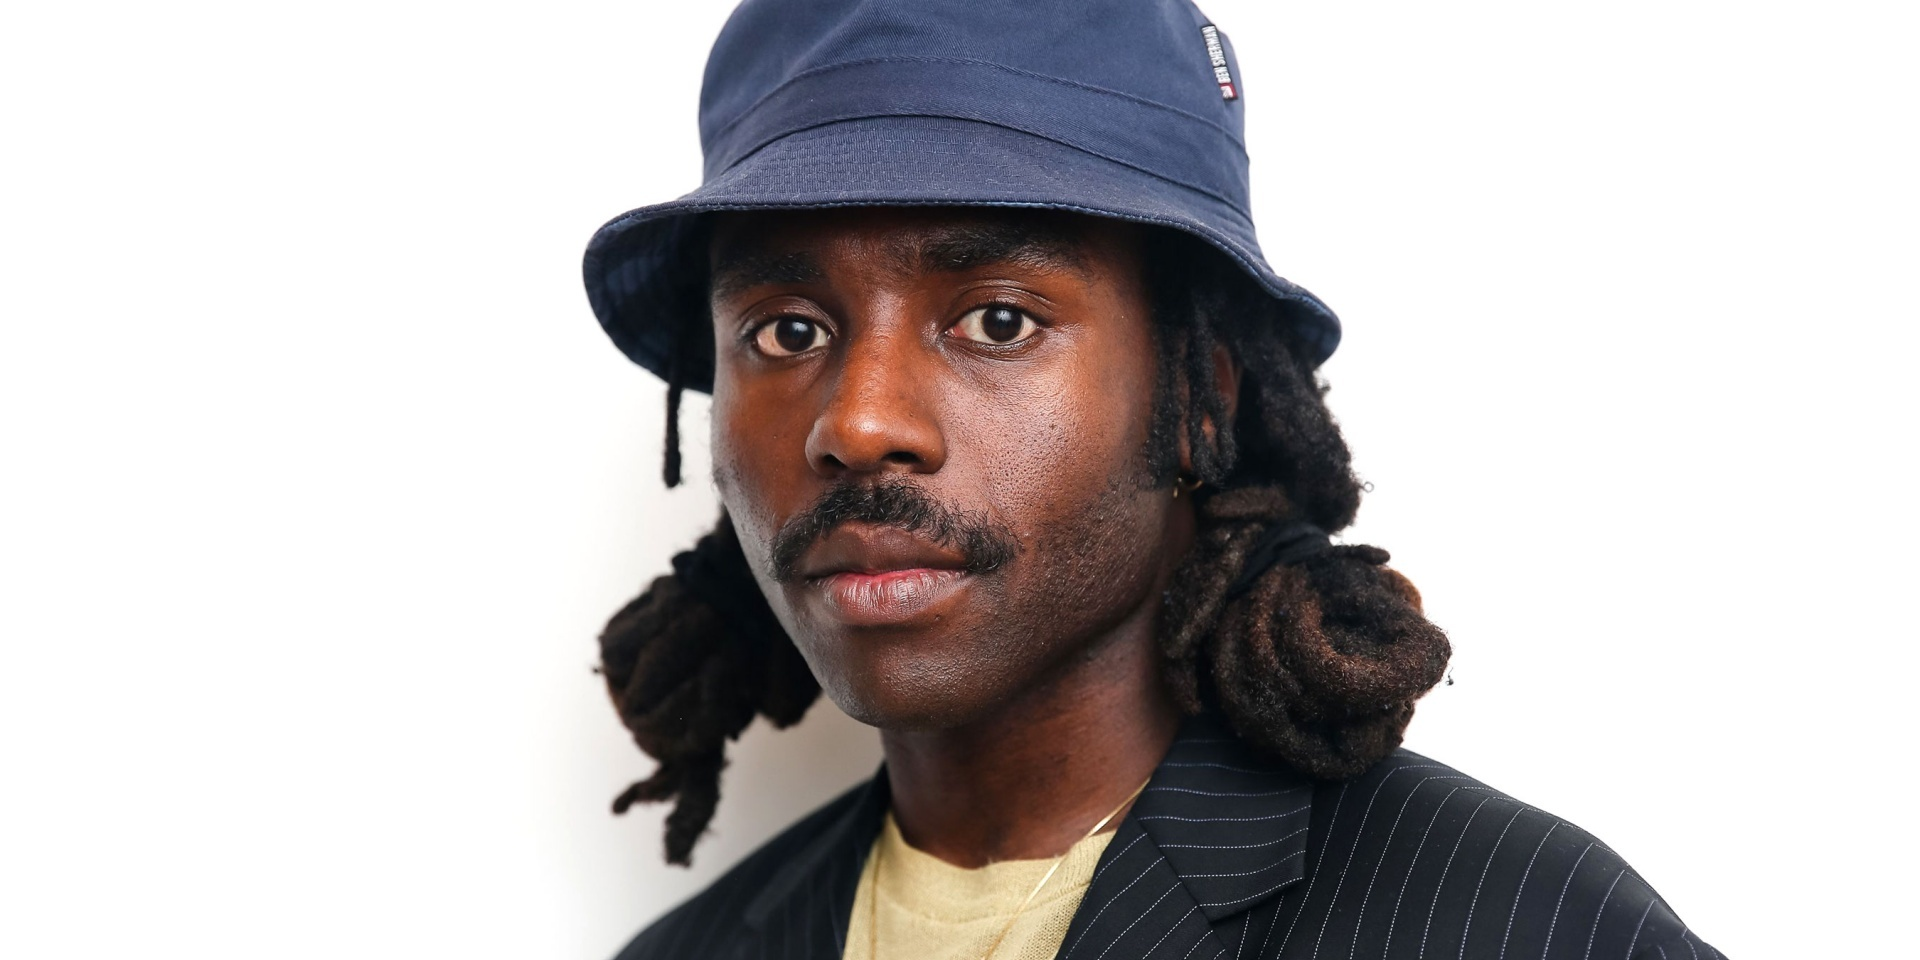 Blood Orange announces physical release to his mixtape, Angel's Pulse